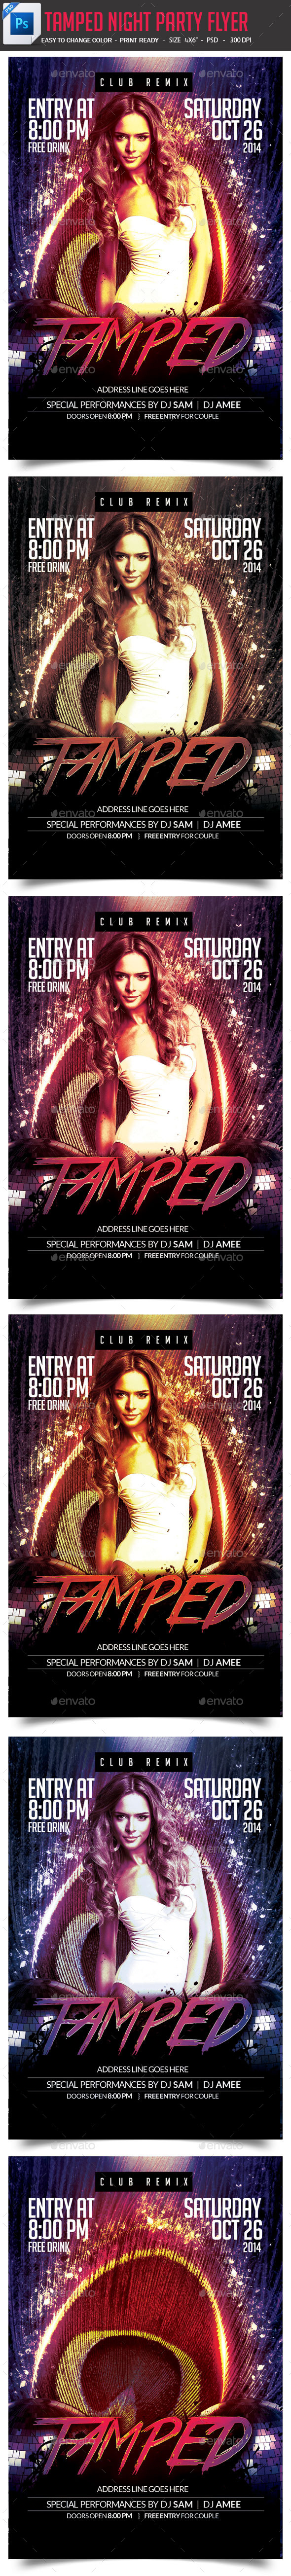 Tamped  Night Party Flyer - Clubs & Parties Events